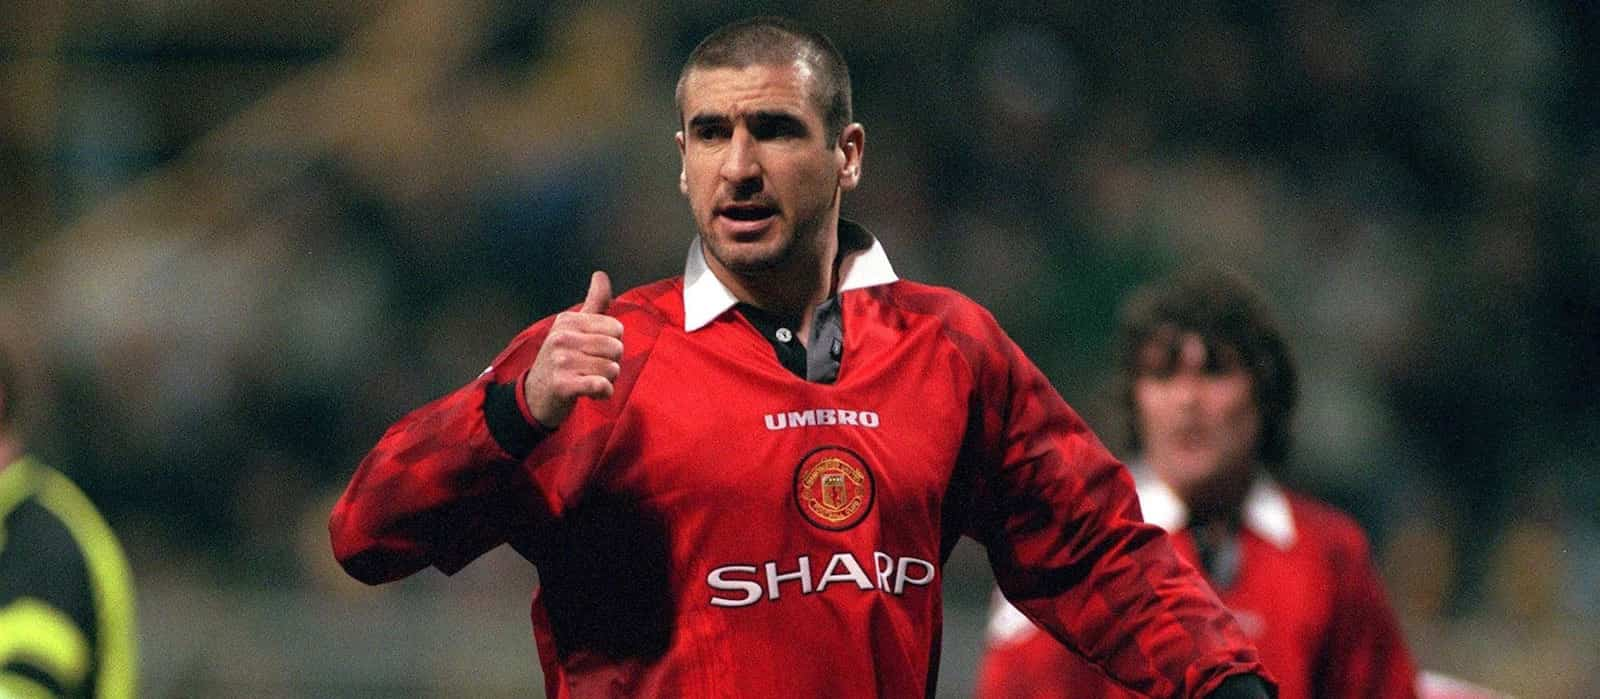 Eric Cantona to make Old Trafford return for Soccer Aid